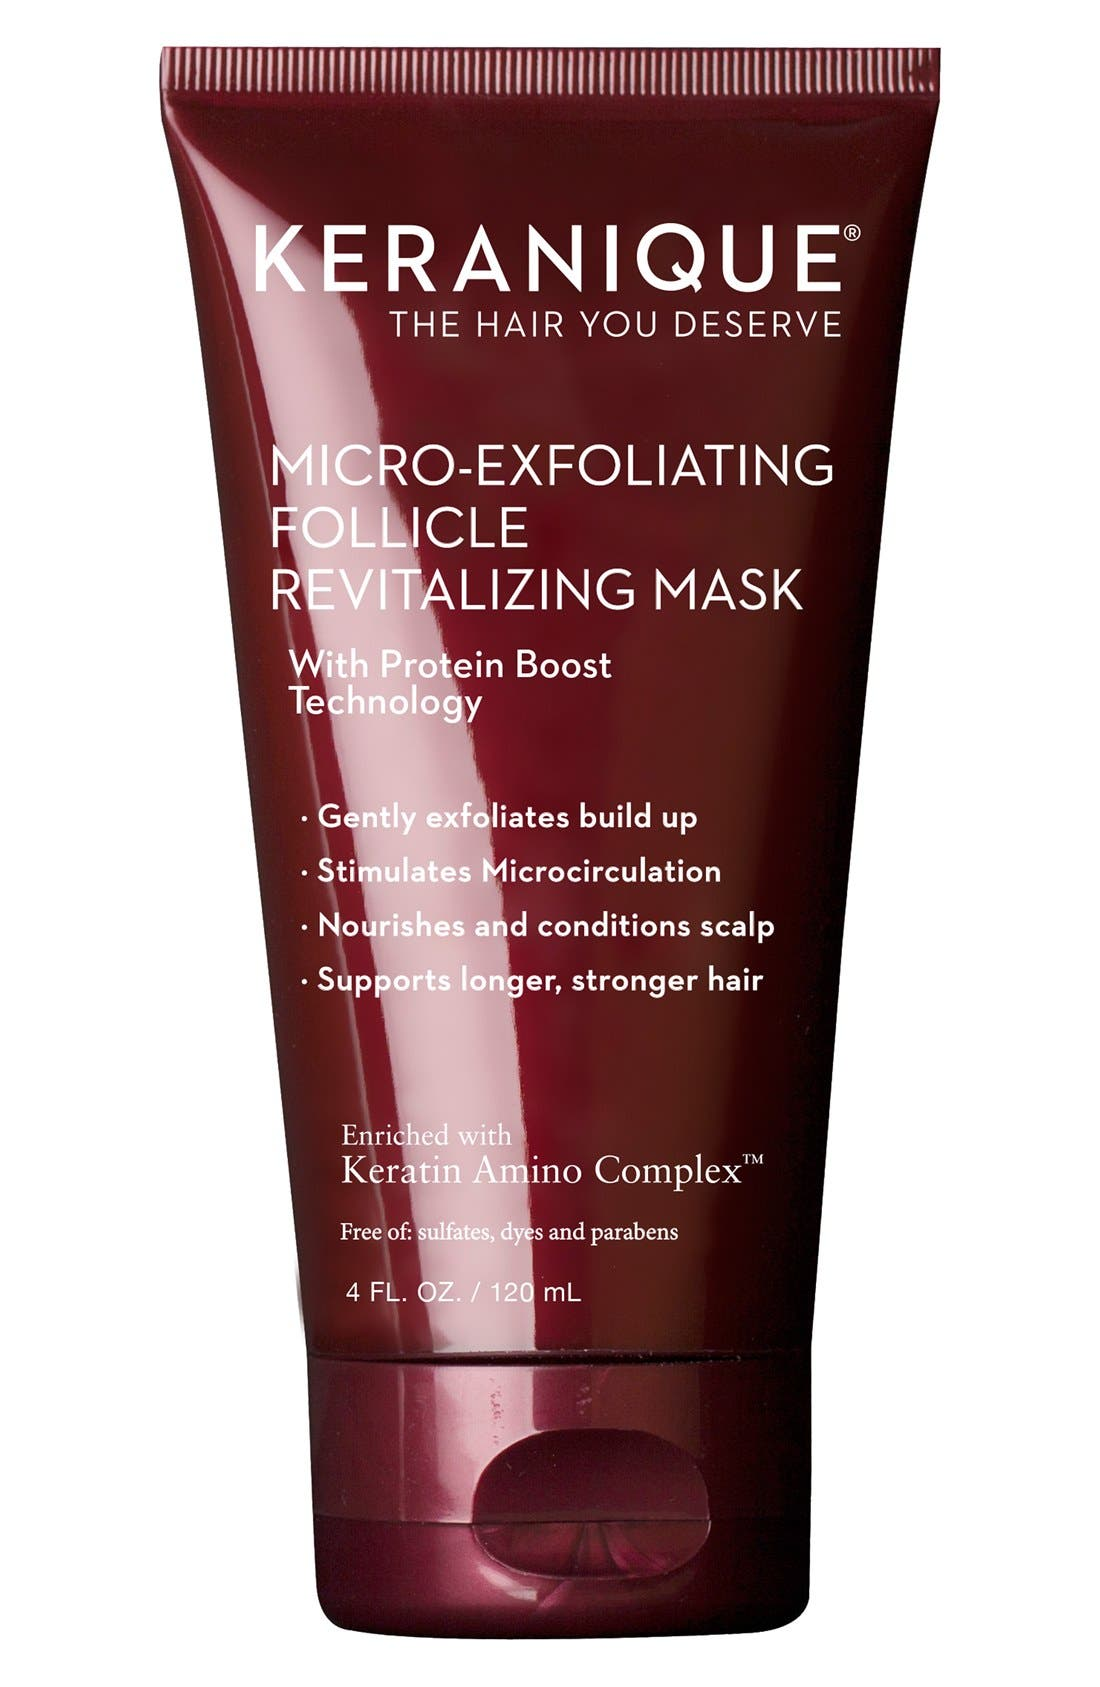 Keranique Micro-Exfoliating Follicle Mask